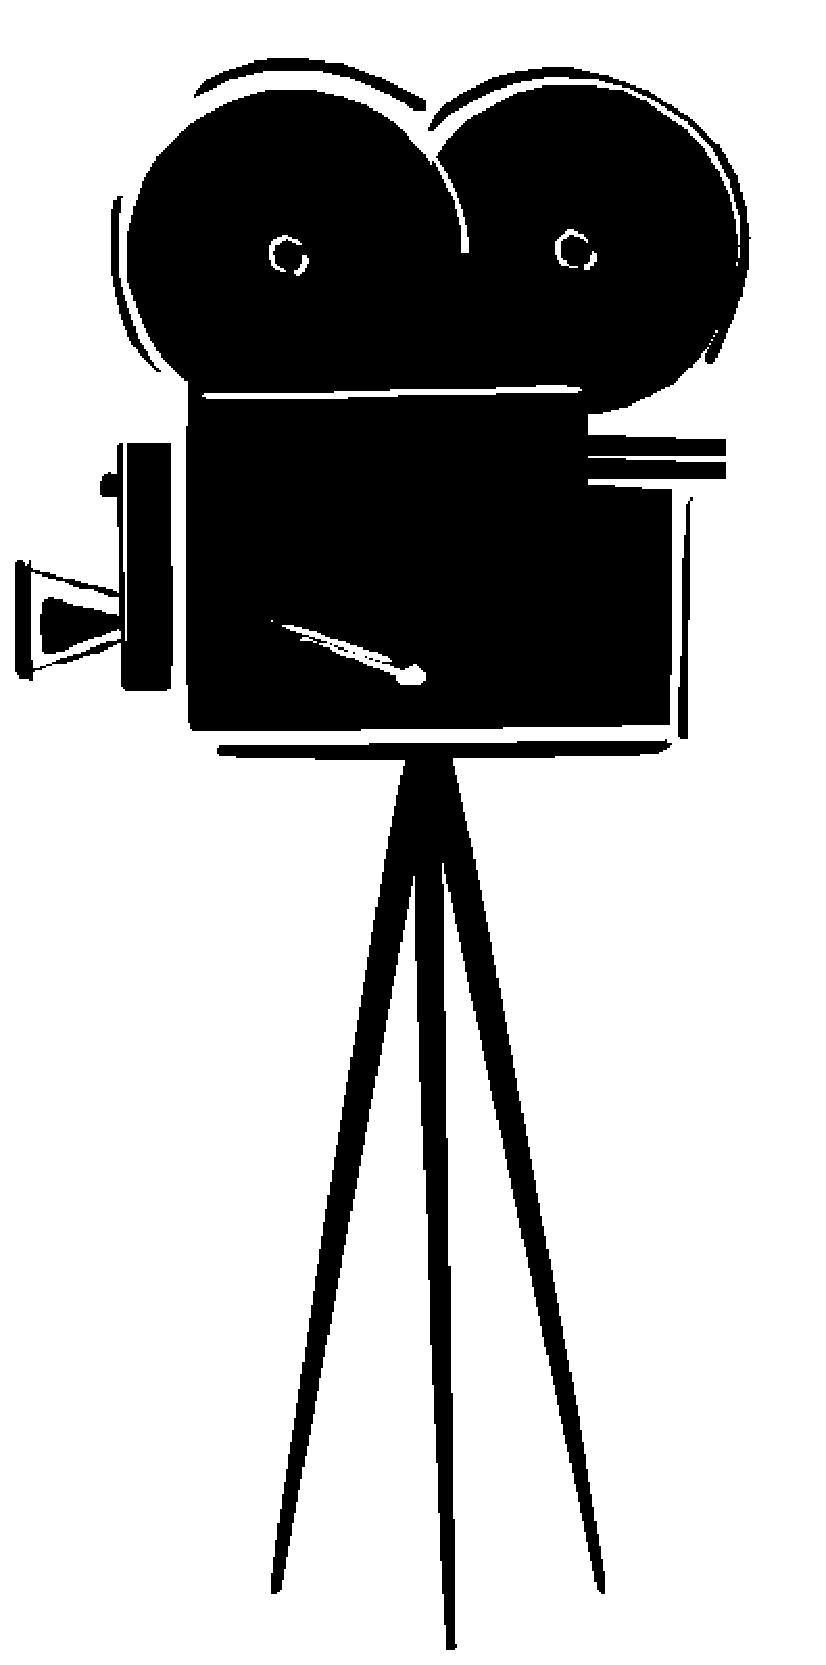 Vintage movie free clipart black and white image freeuse stock Free Movie Camera Clipart, Download Free Clip Art, Free Clip ... image freeuse stock